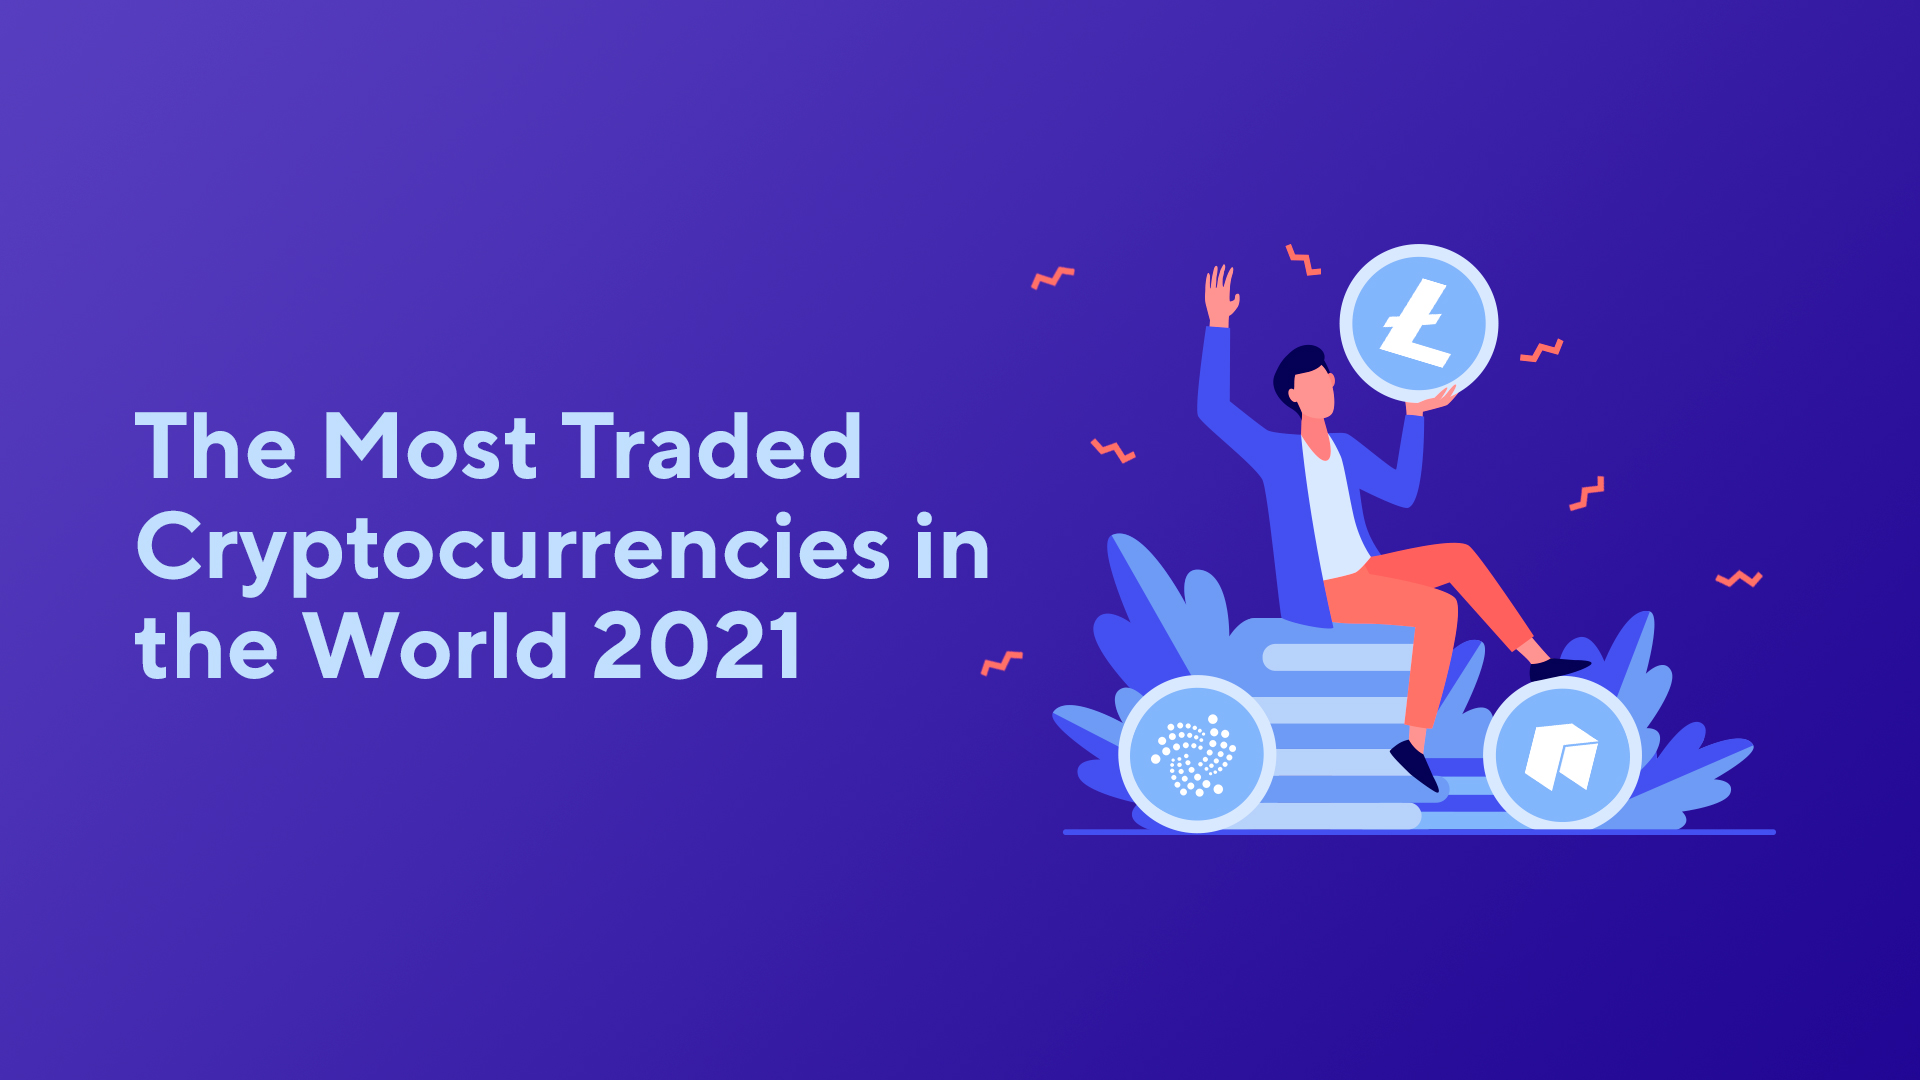 The Most Traded Cryptocurrencies in the World 2021